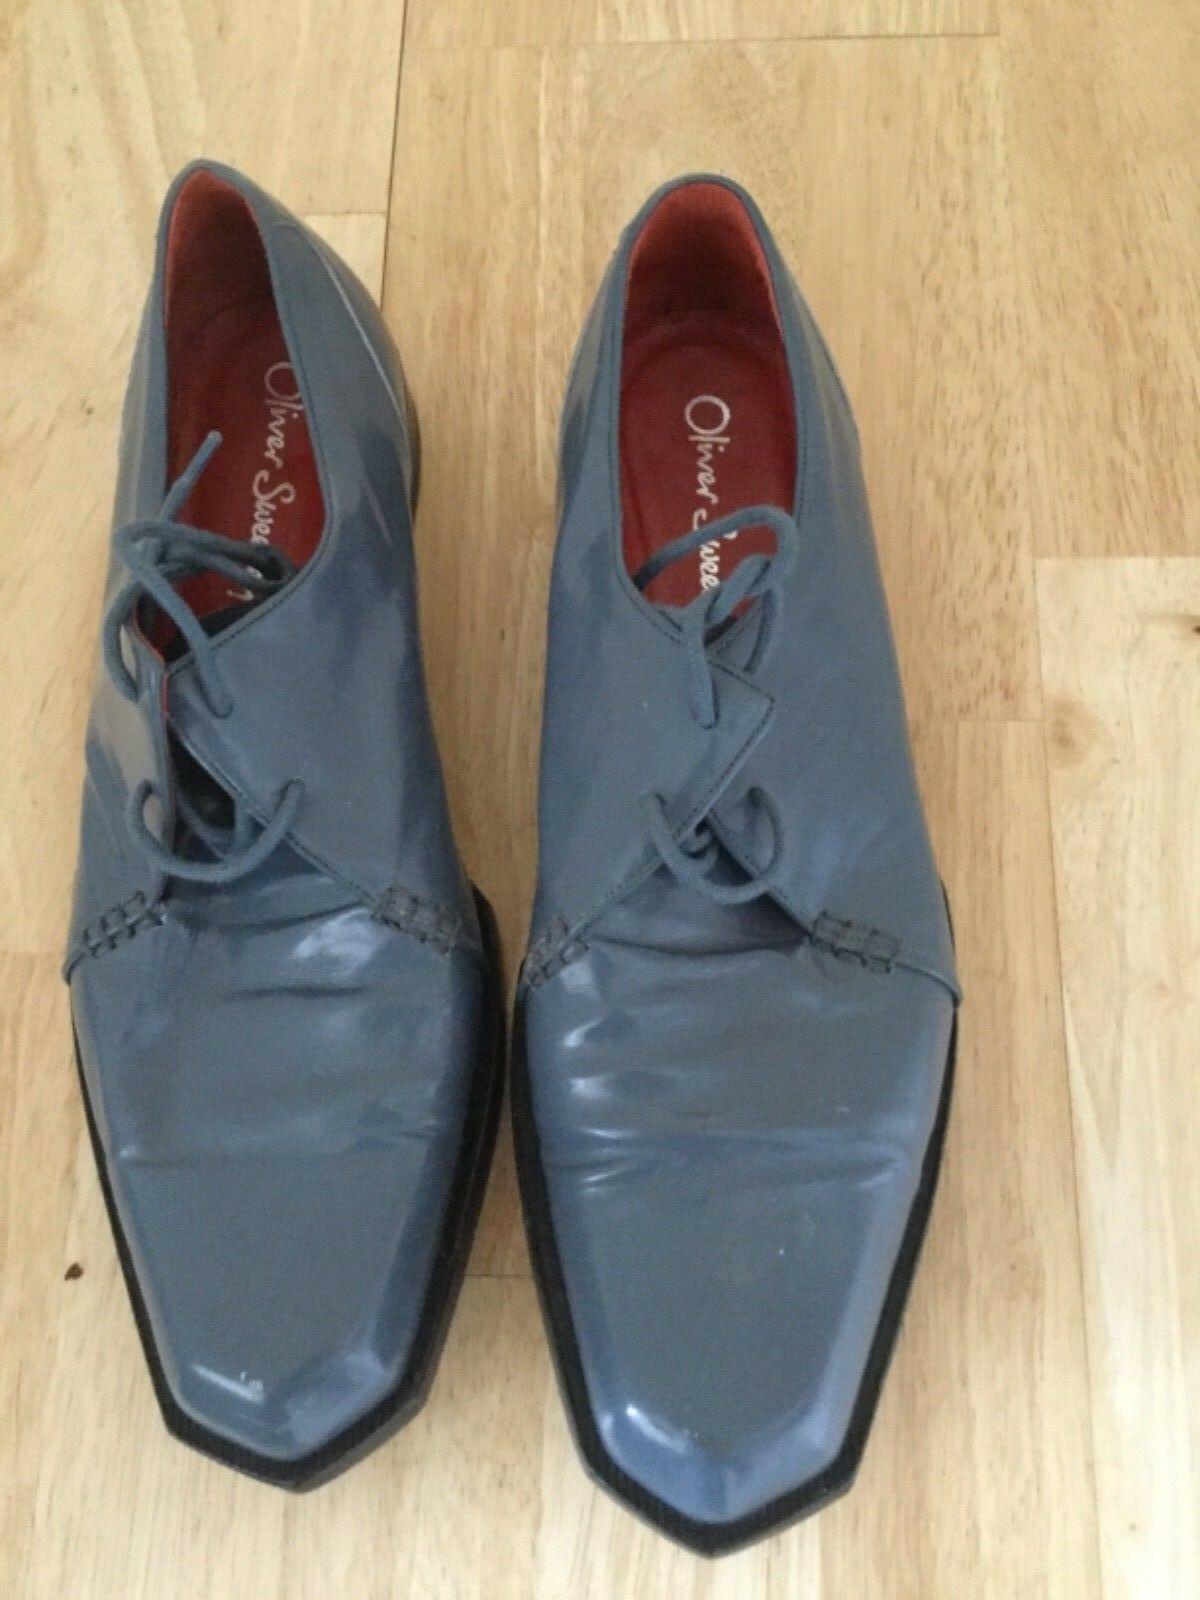 Oliver sweeney shoes  size 9.5 colour grey